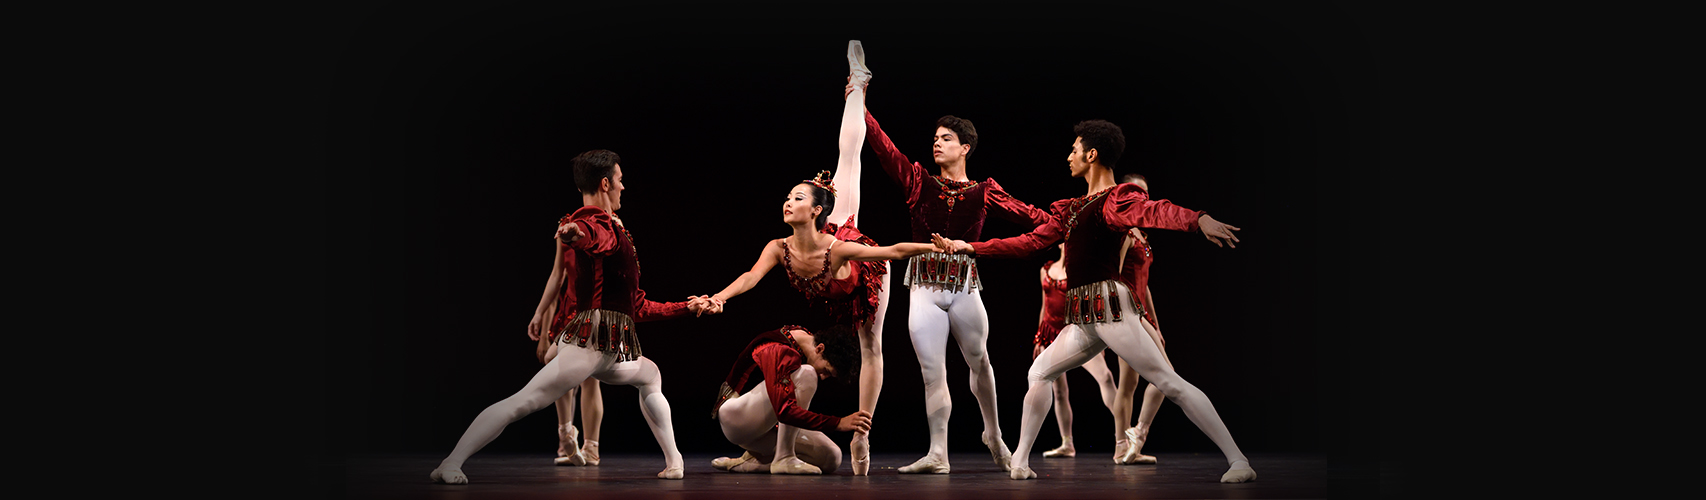 San Francisco Ballet in Balanchine's Rubies